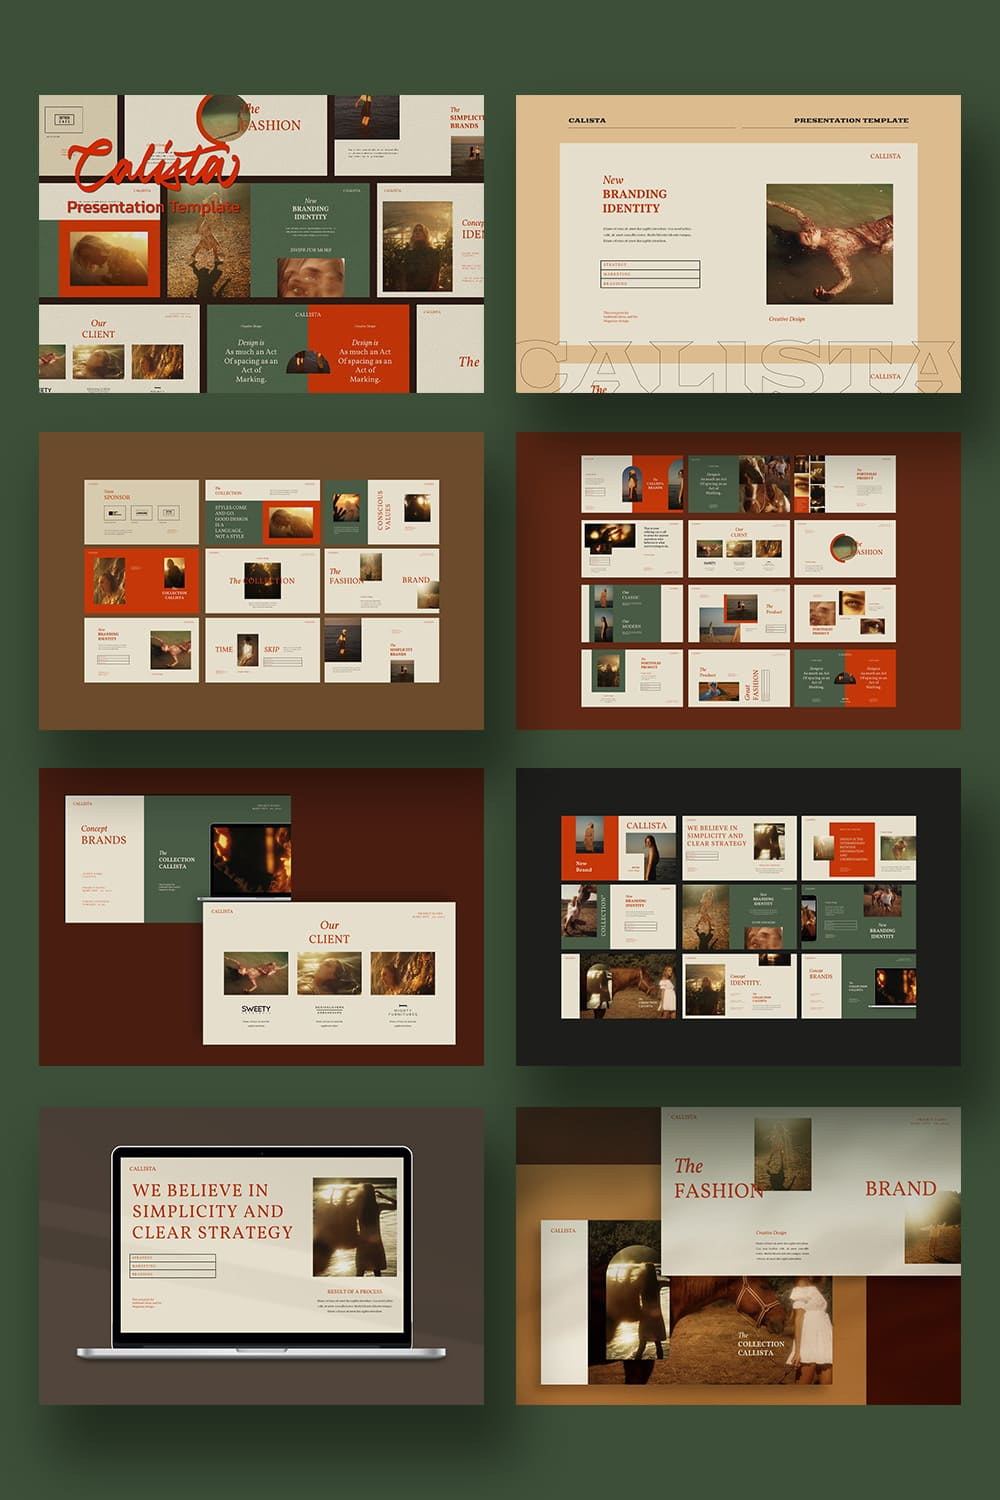 Deep greens, brown elements and red typography are a classic set for a quality presentation.